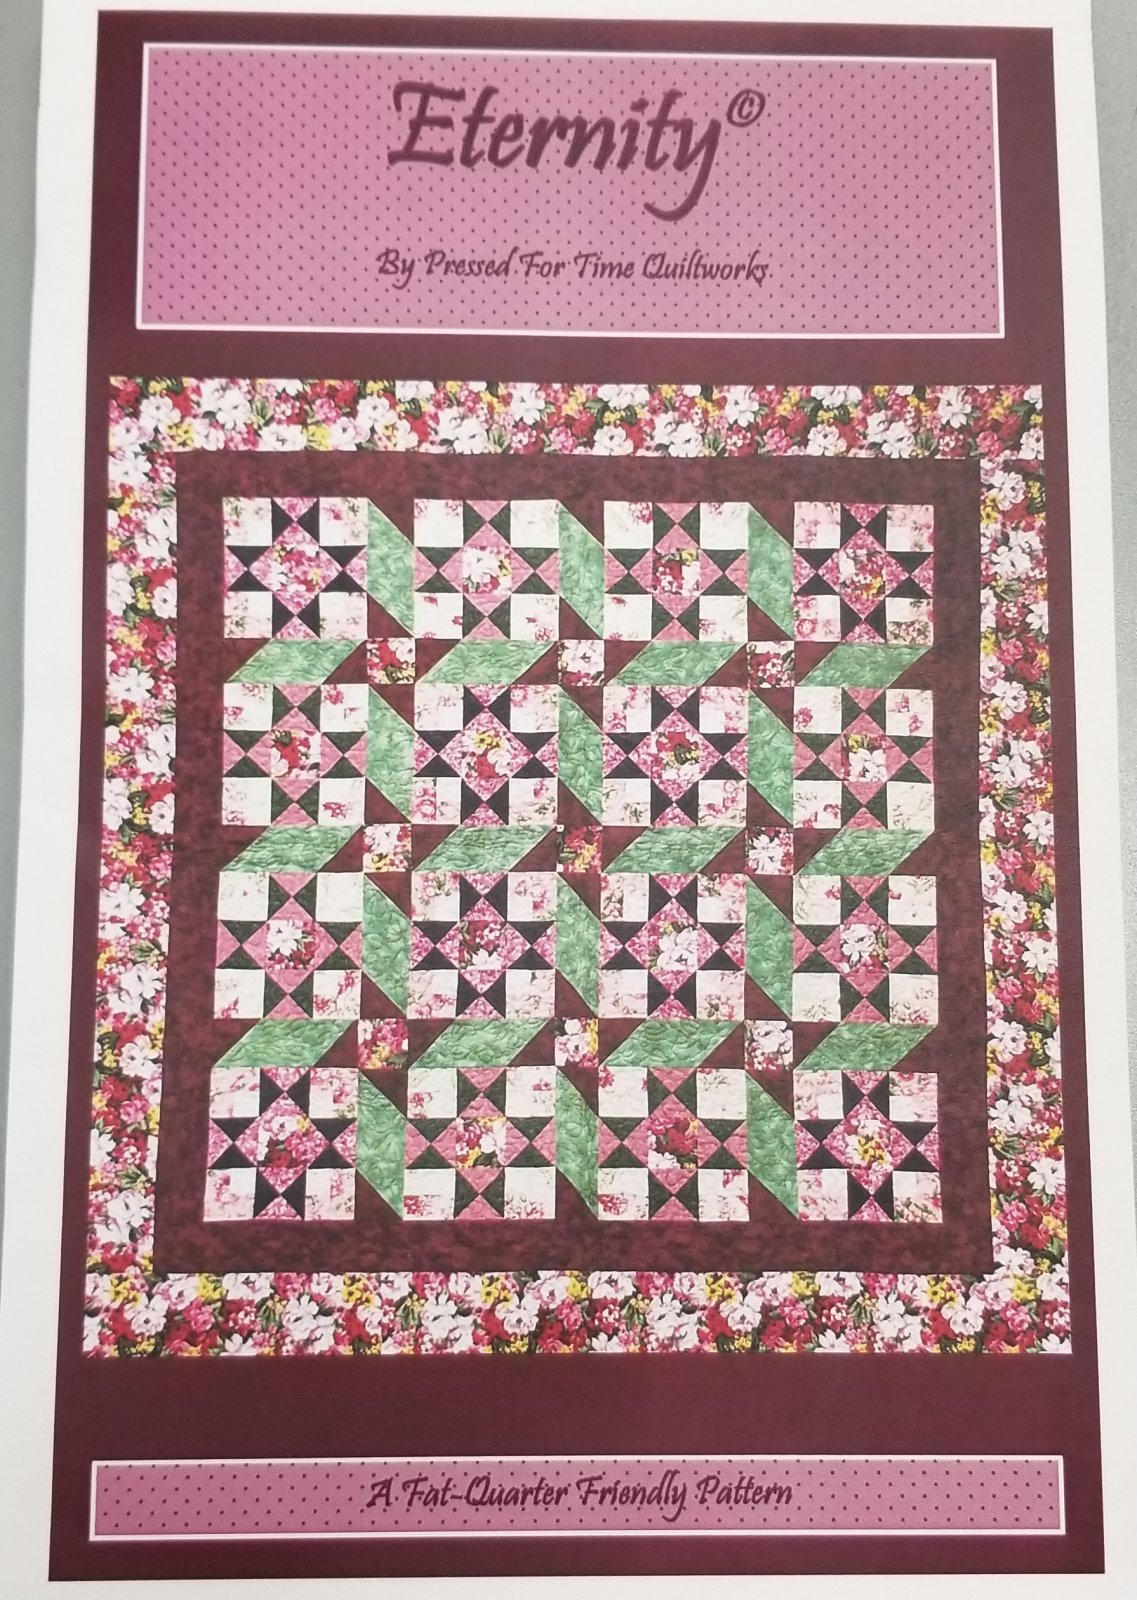 Eternity by Pressed For Time Quiltworks